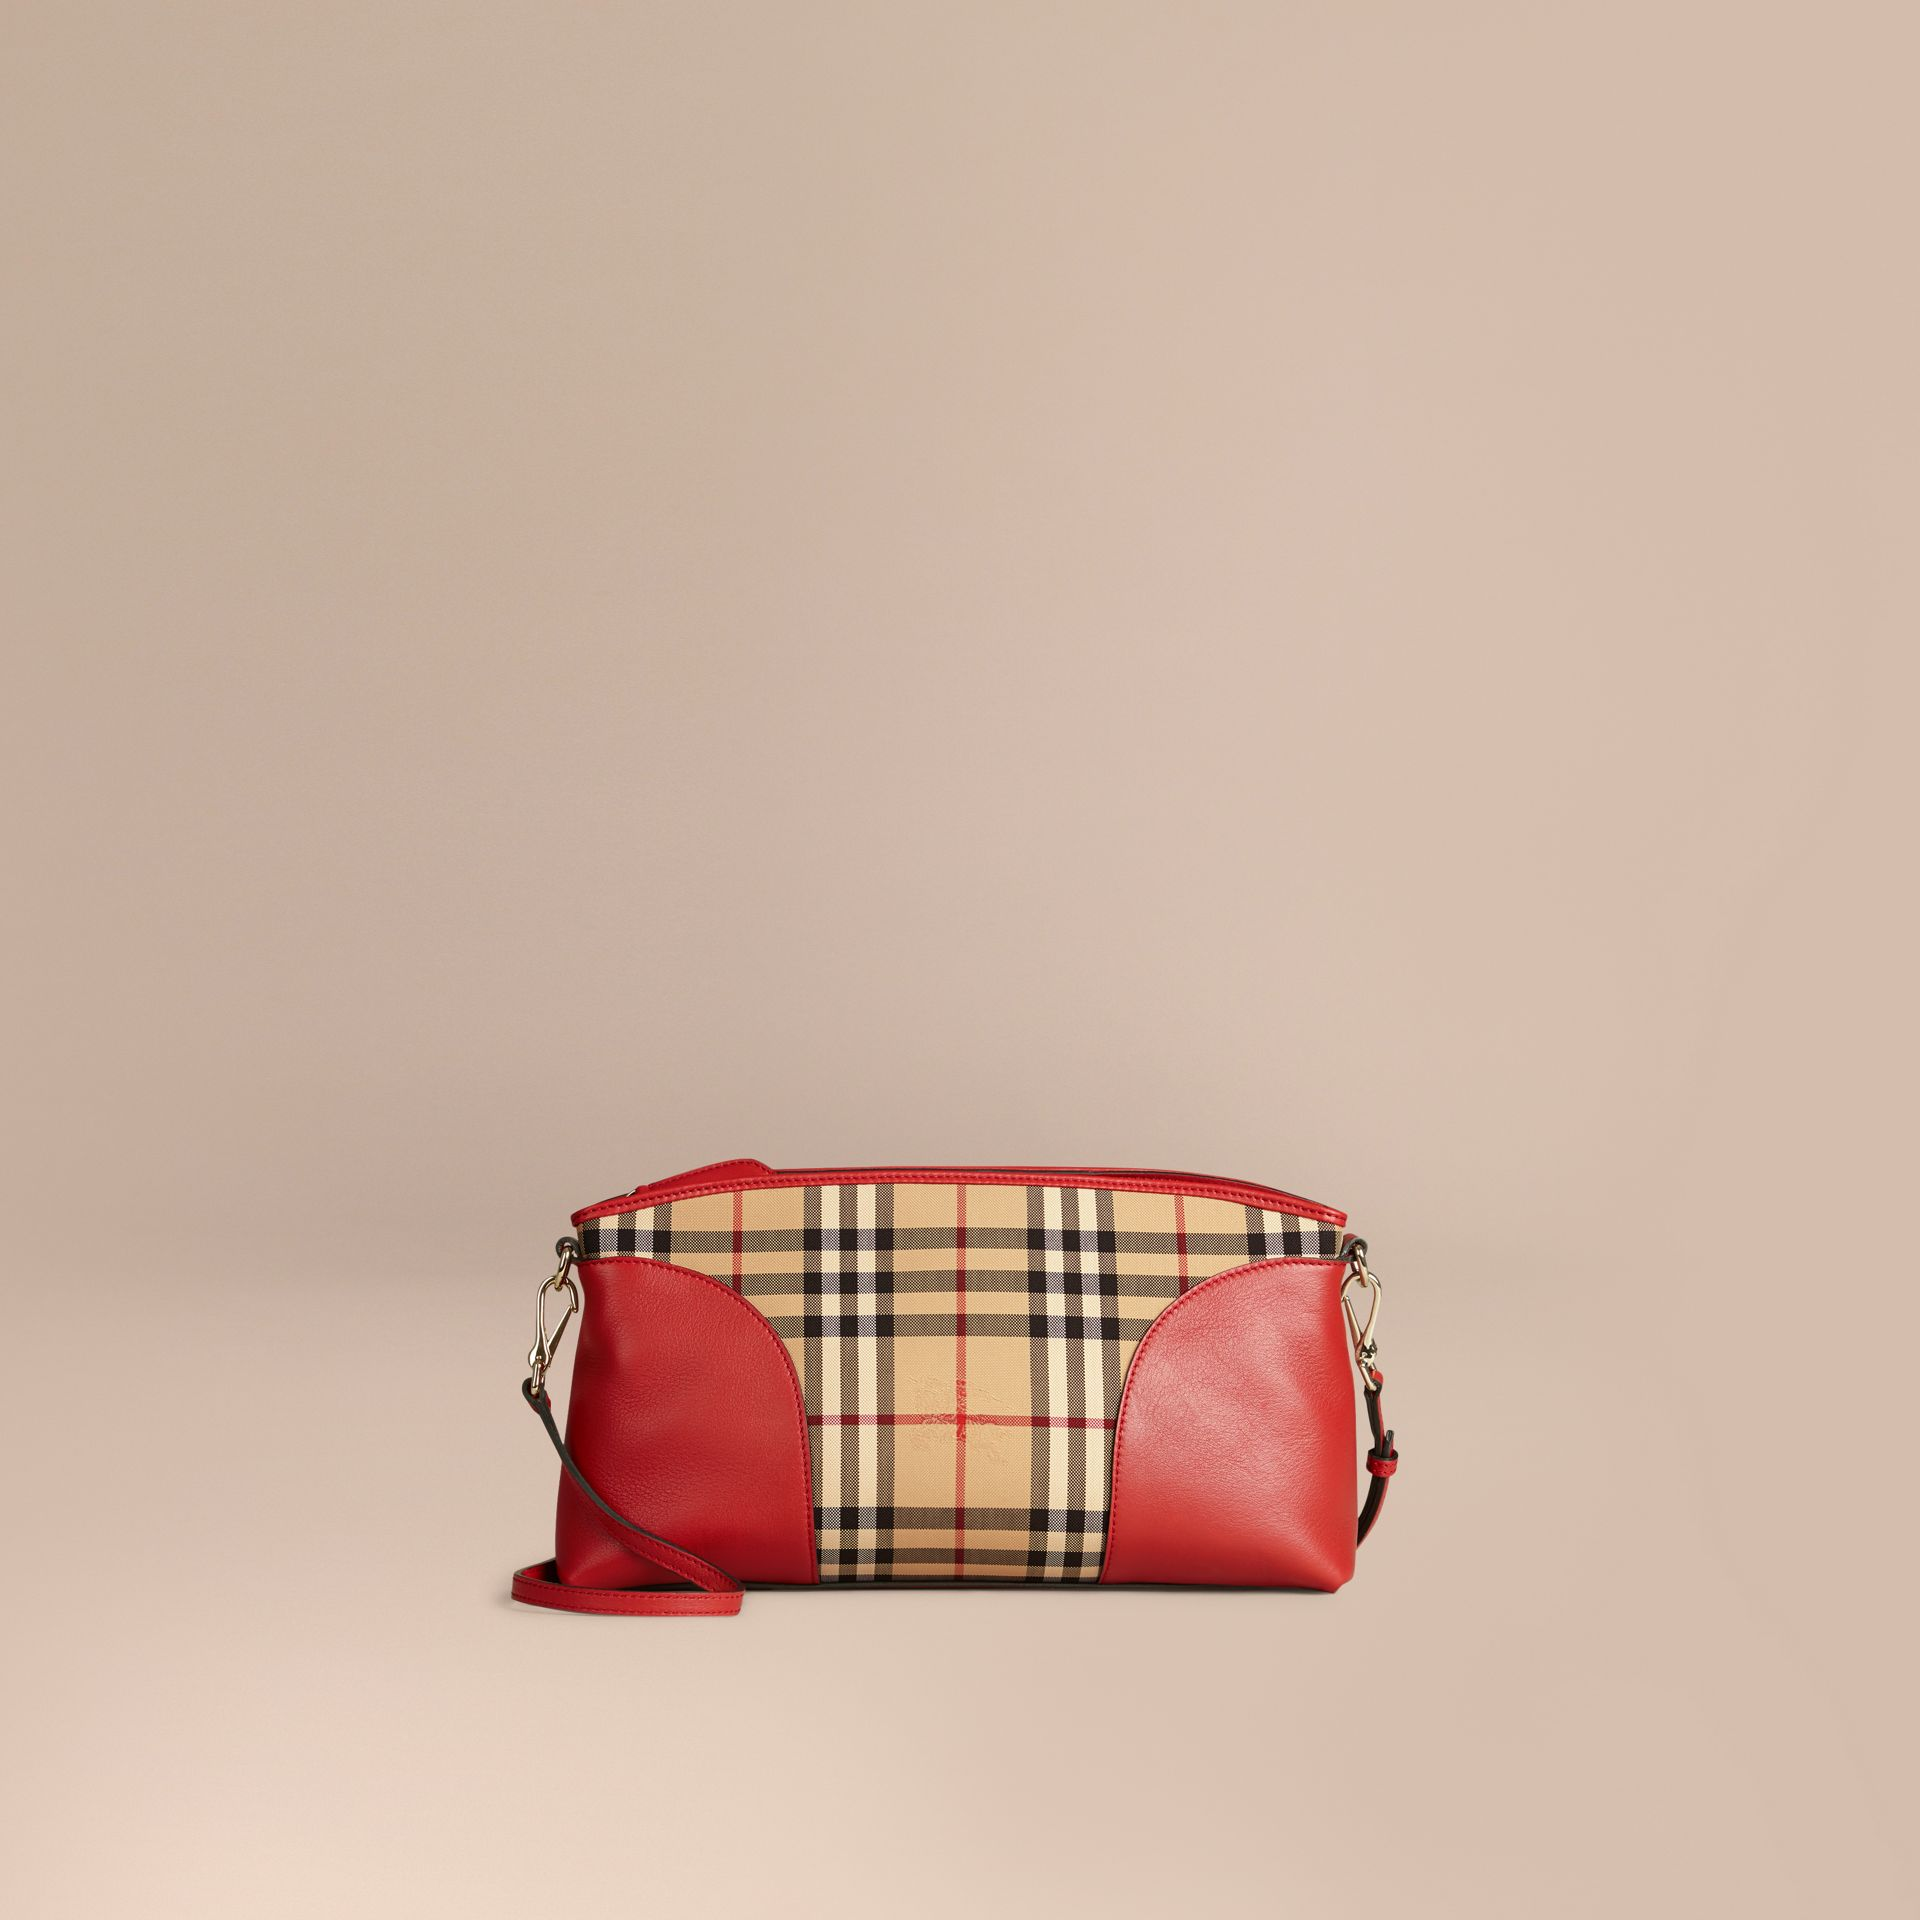 Honey/parade red Horseferry Check and Leather Clutch Bag Honey/parade Red - gallery image 6